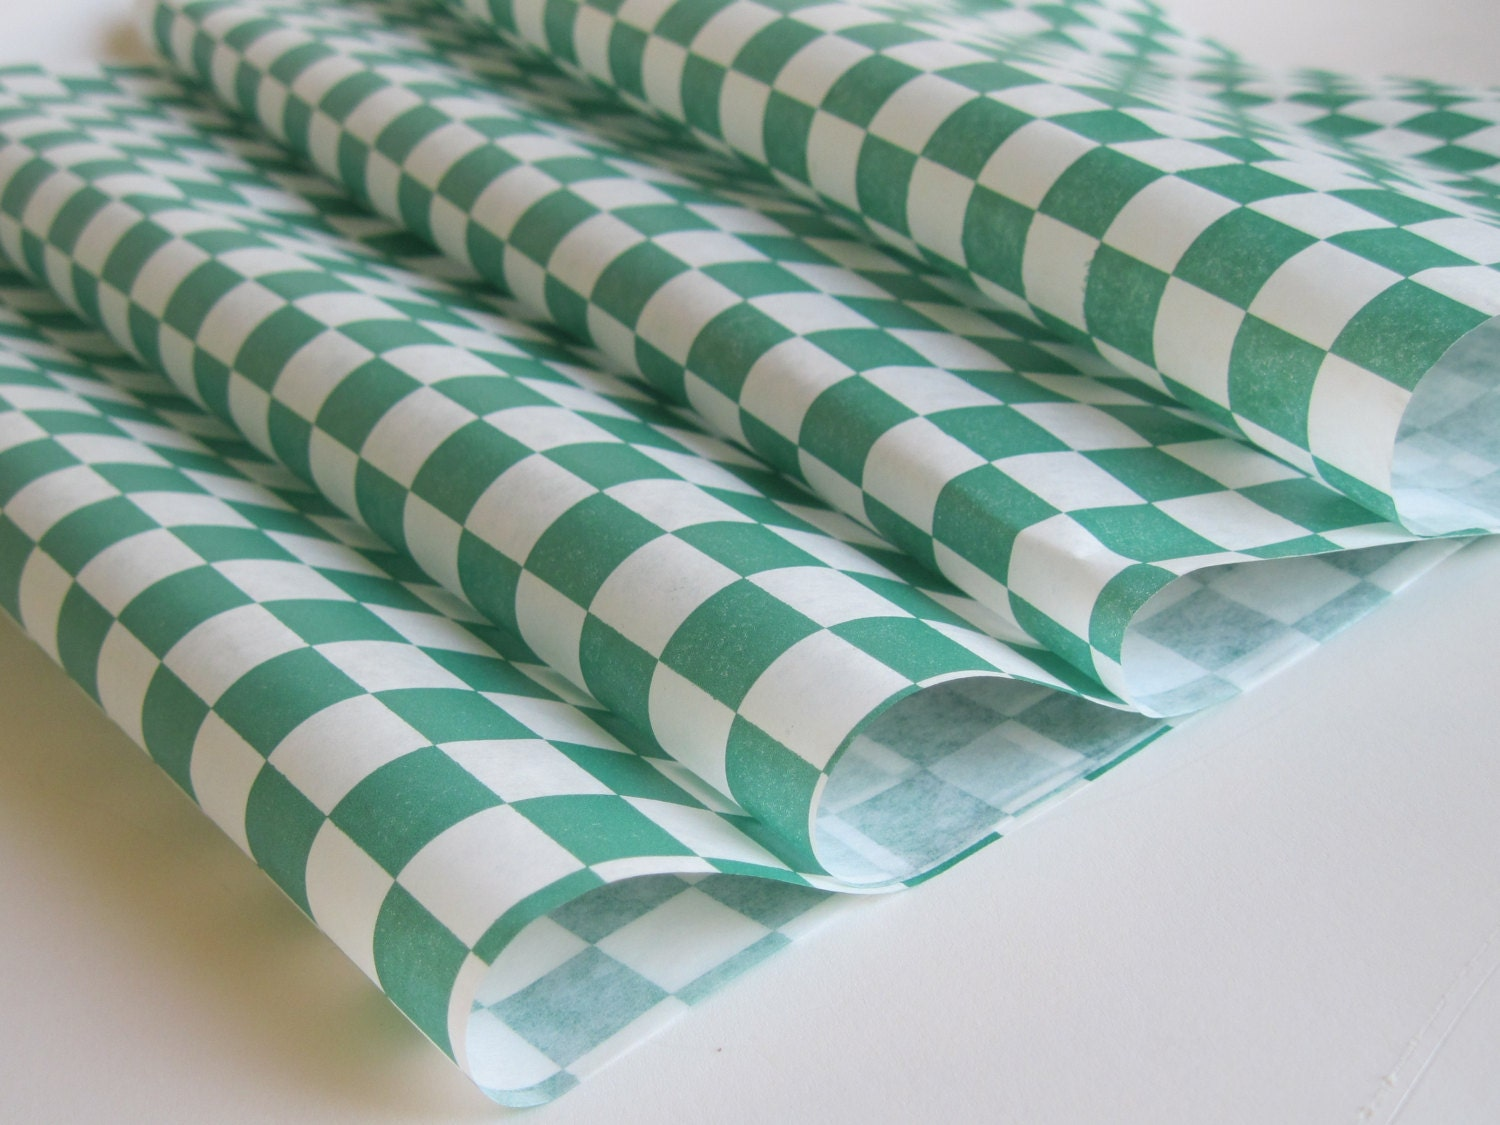 Checkered Wax Paper Wax Paper-25 Sheets of Green